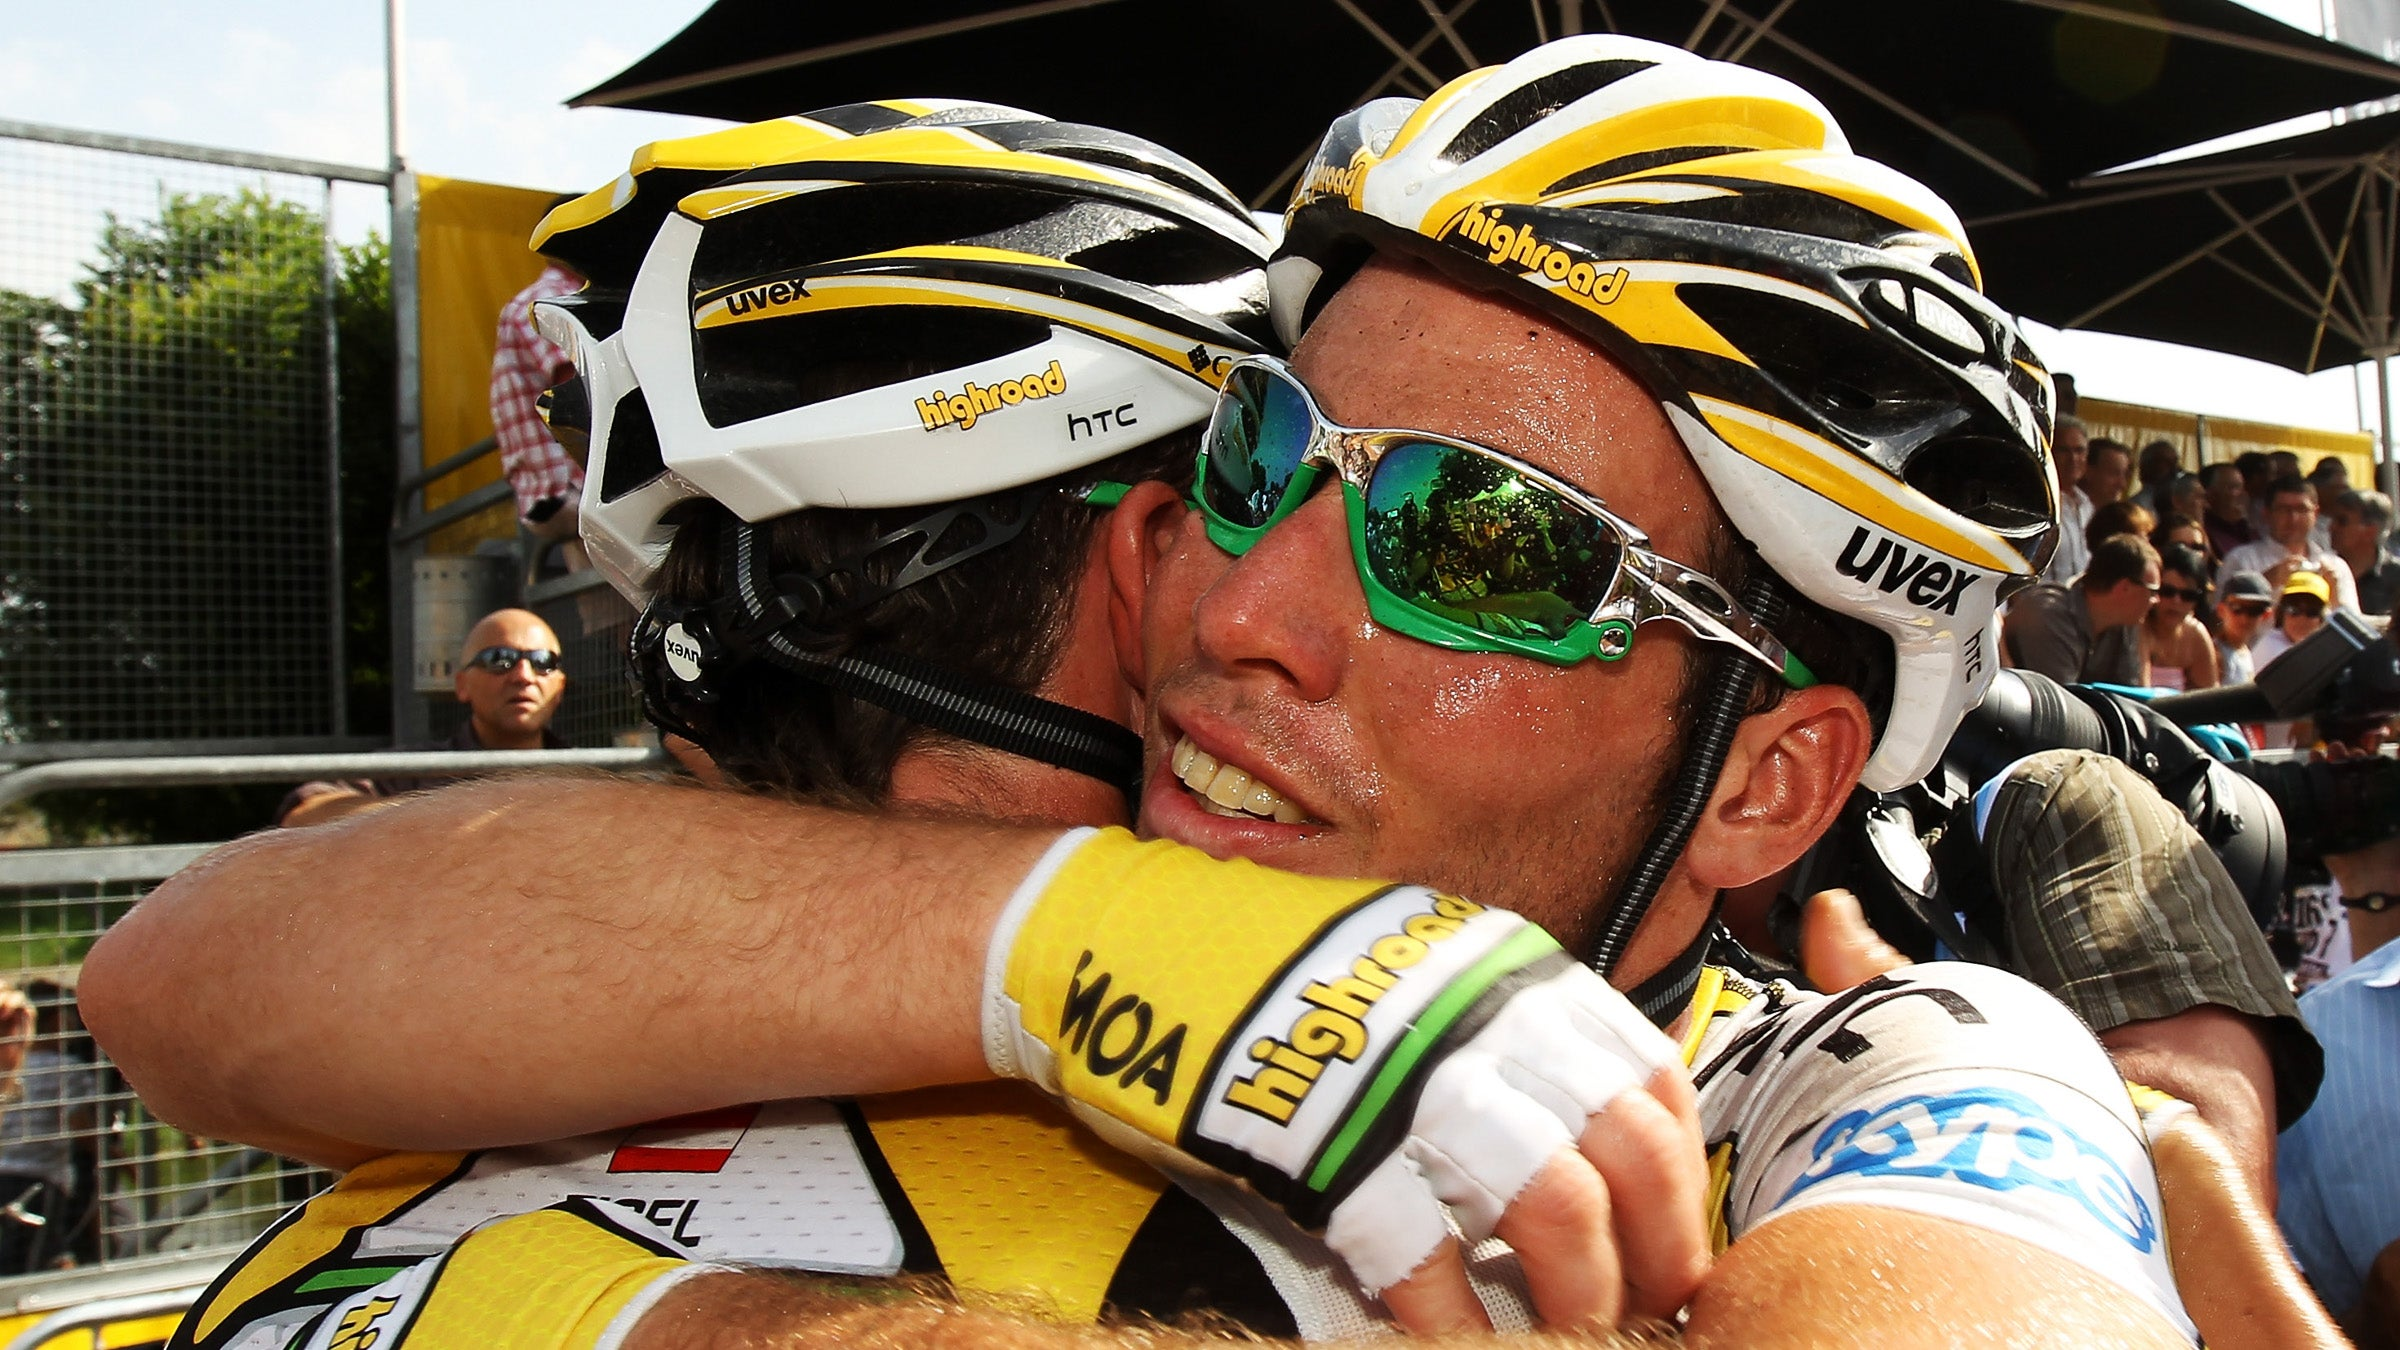 Untold stories of the Tour de France: Suffering with Mark Cavendish